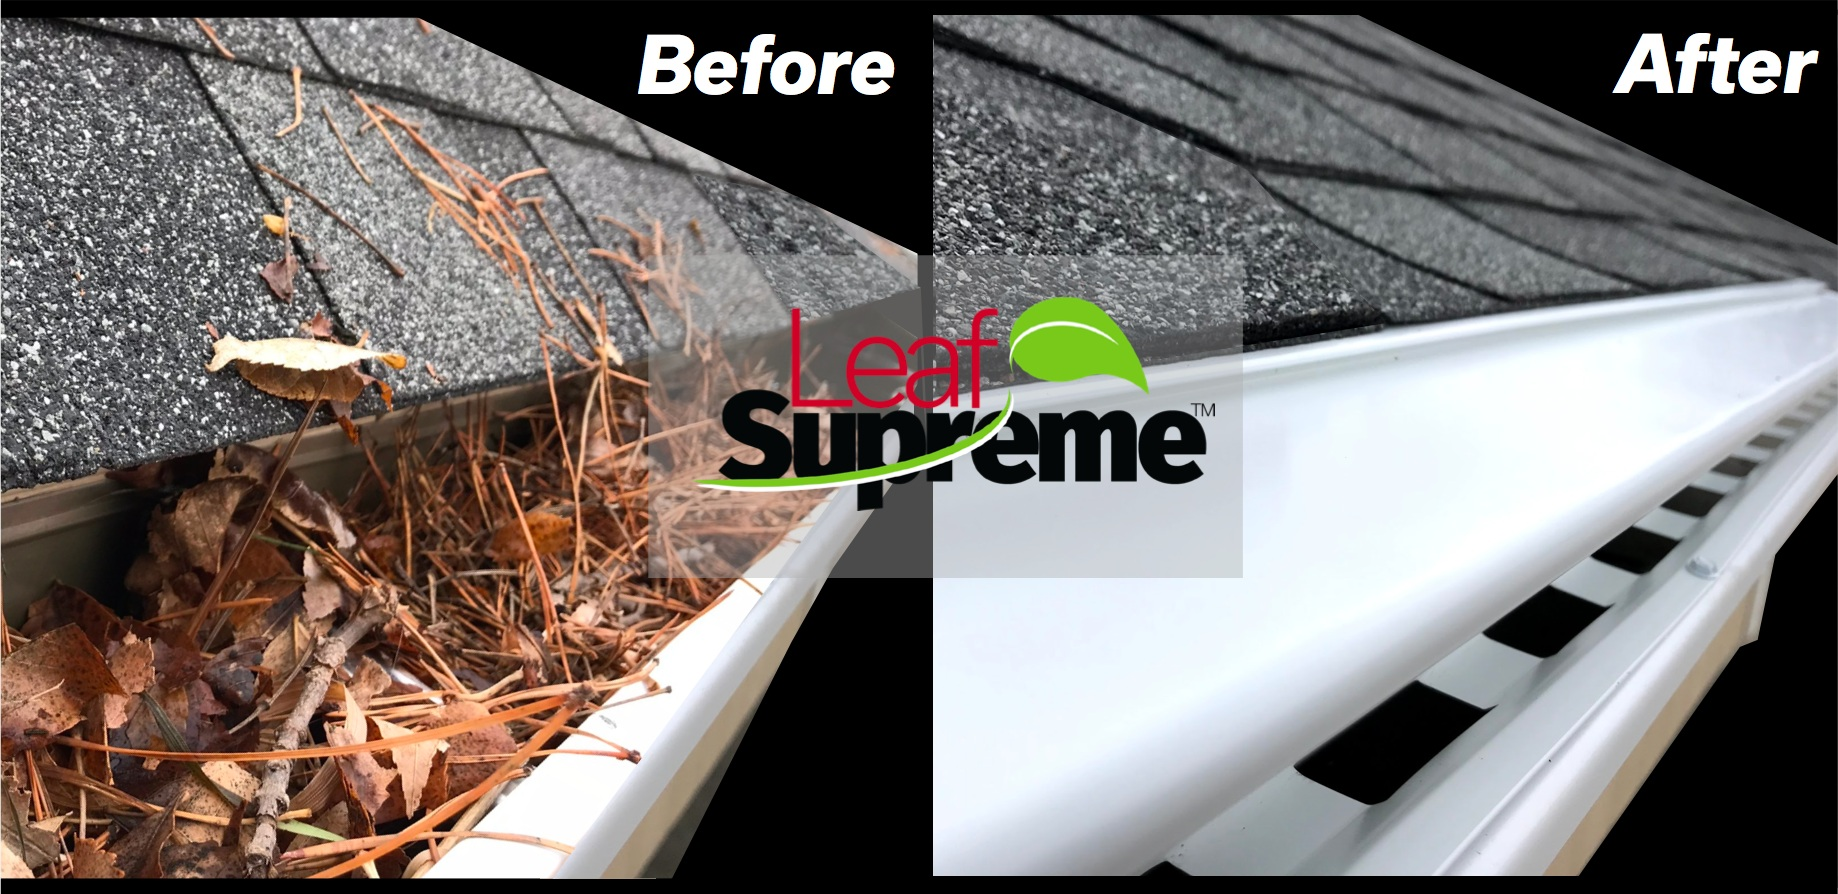 Clogged Gutter before Leaf Supreme™